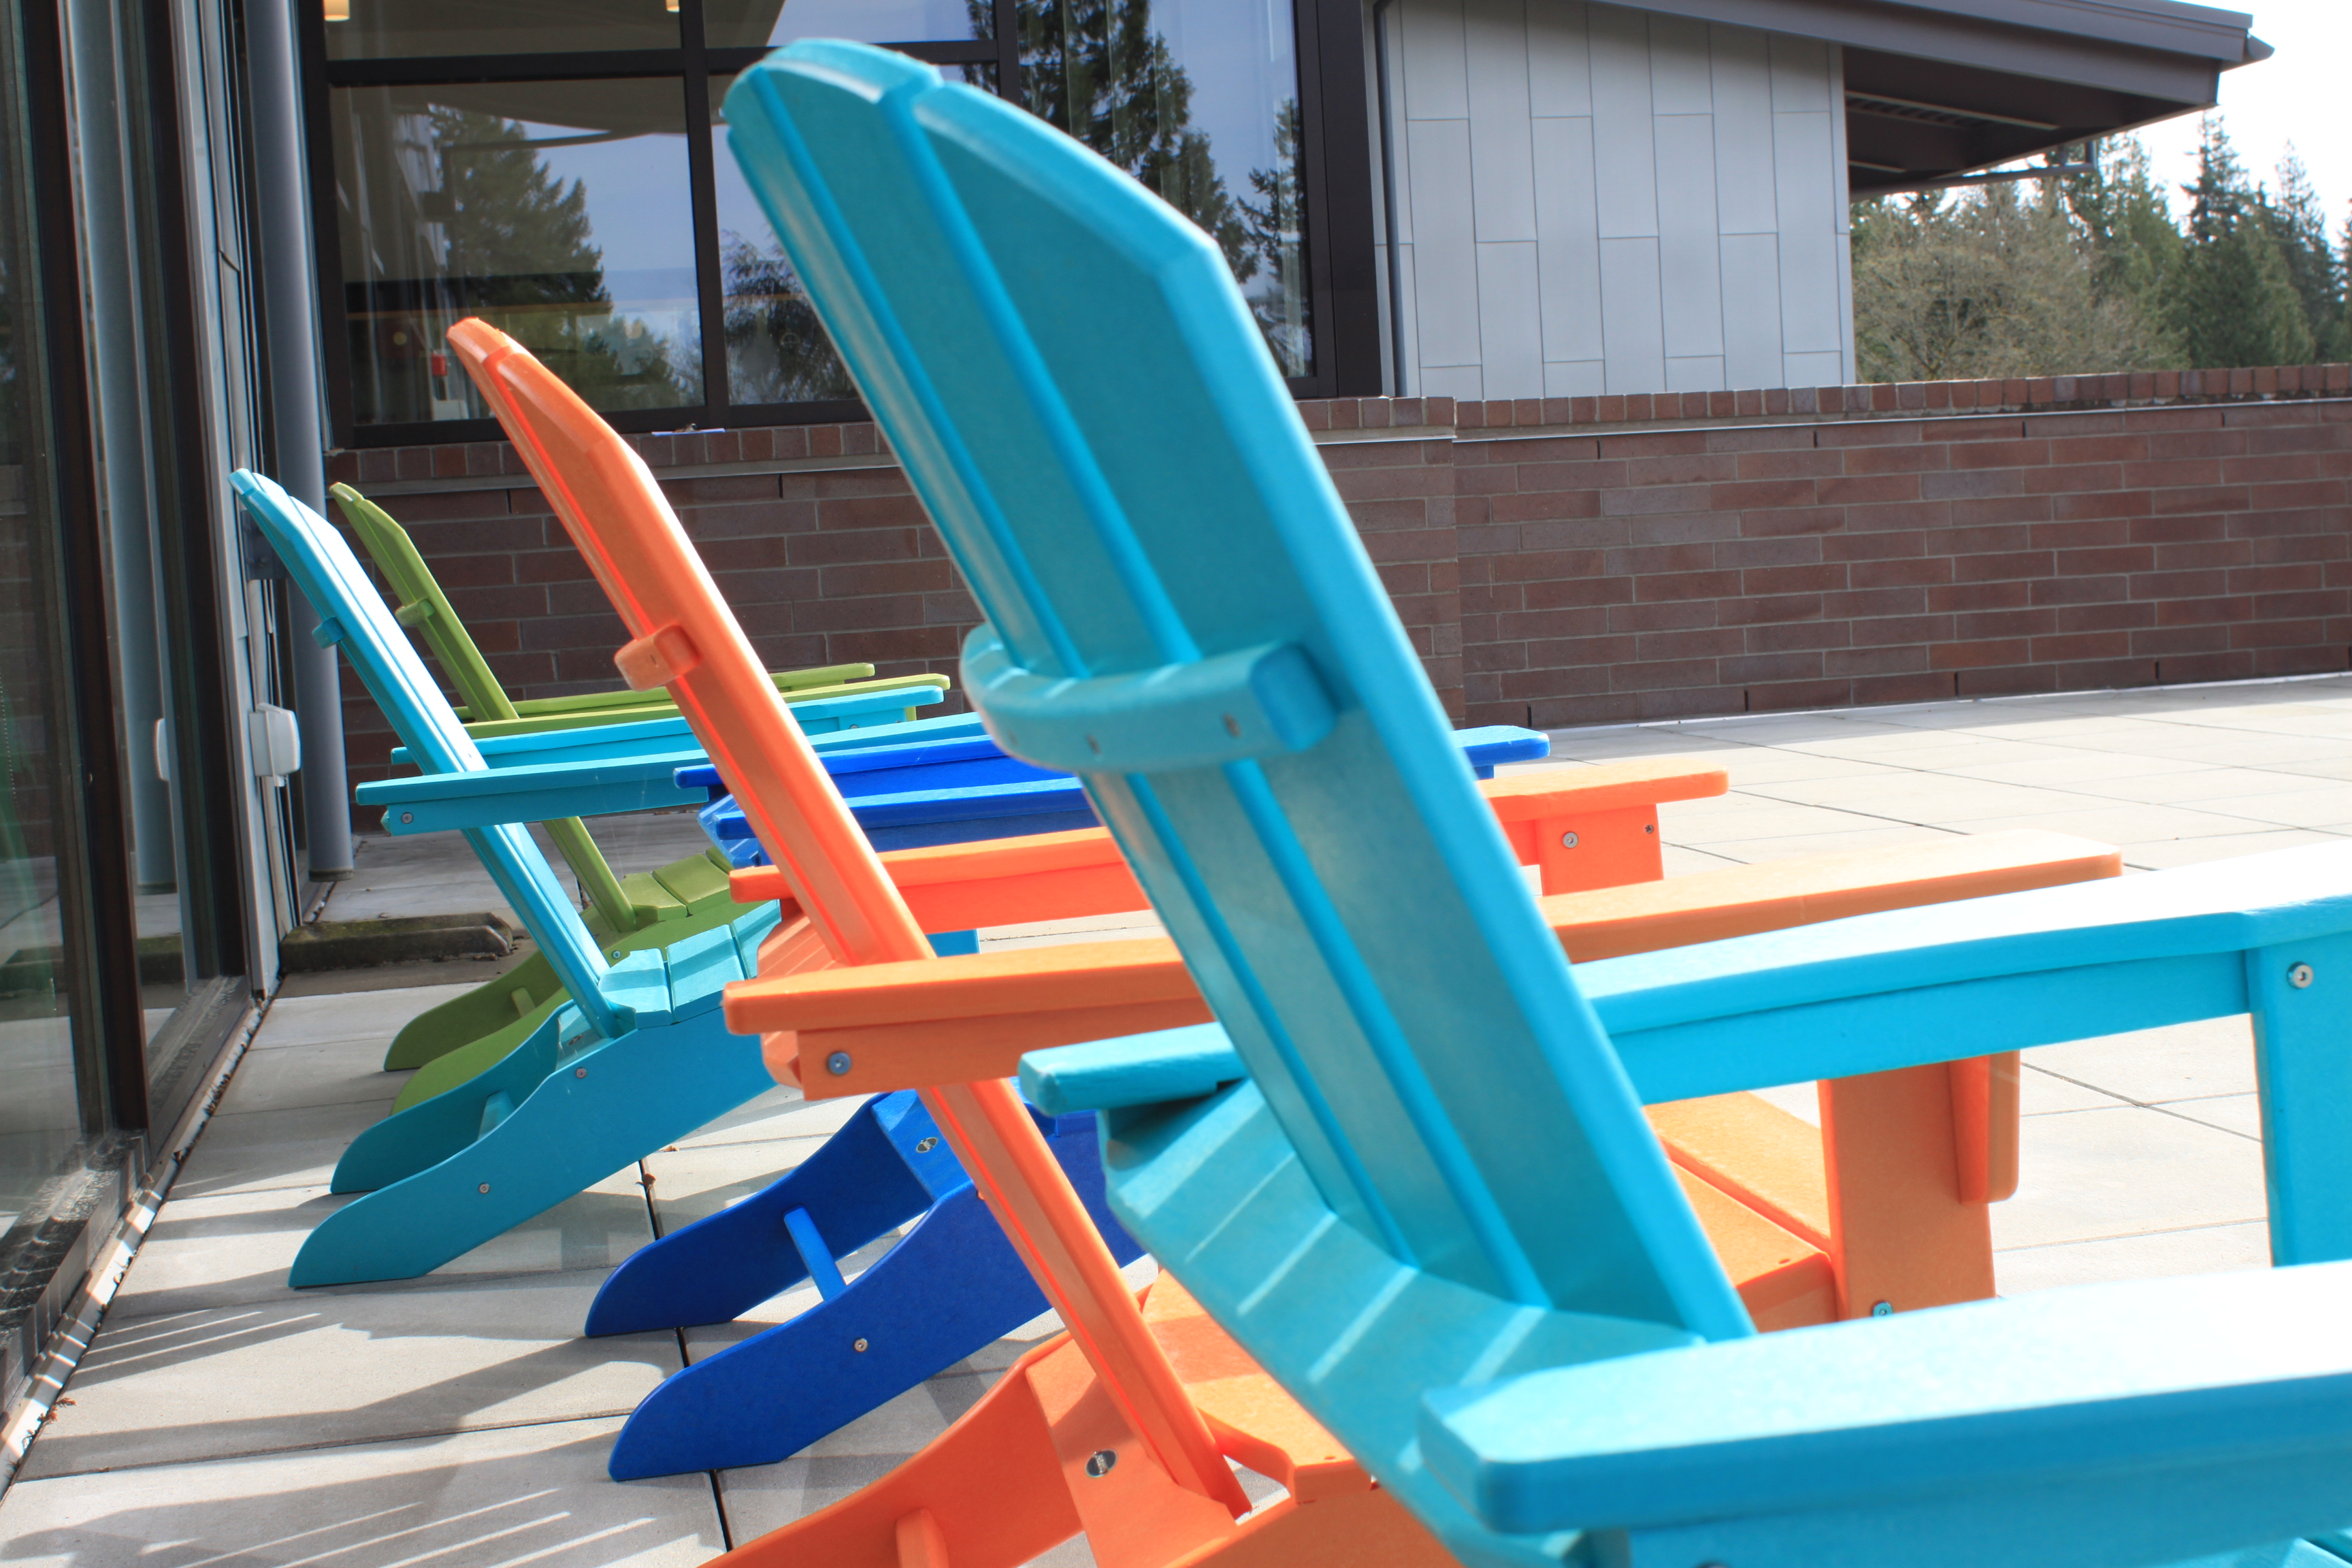 plastic lounging chairs